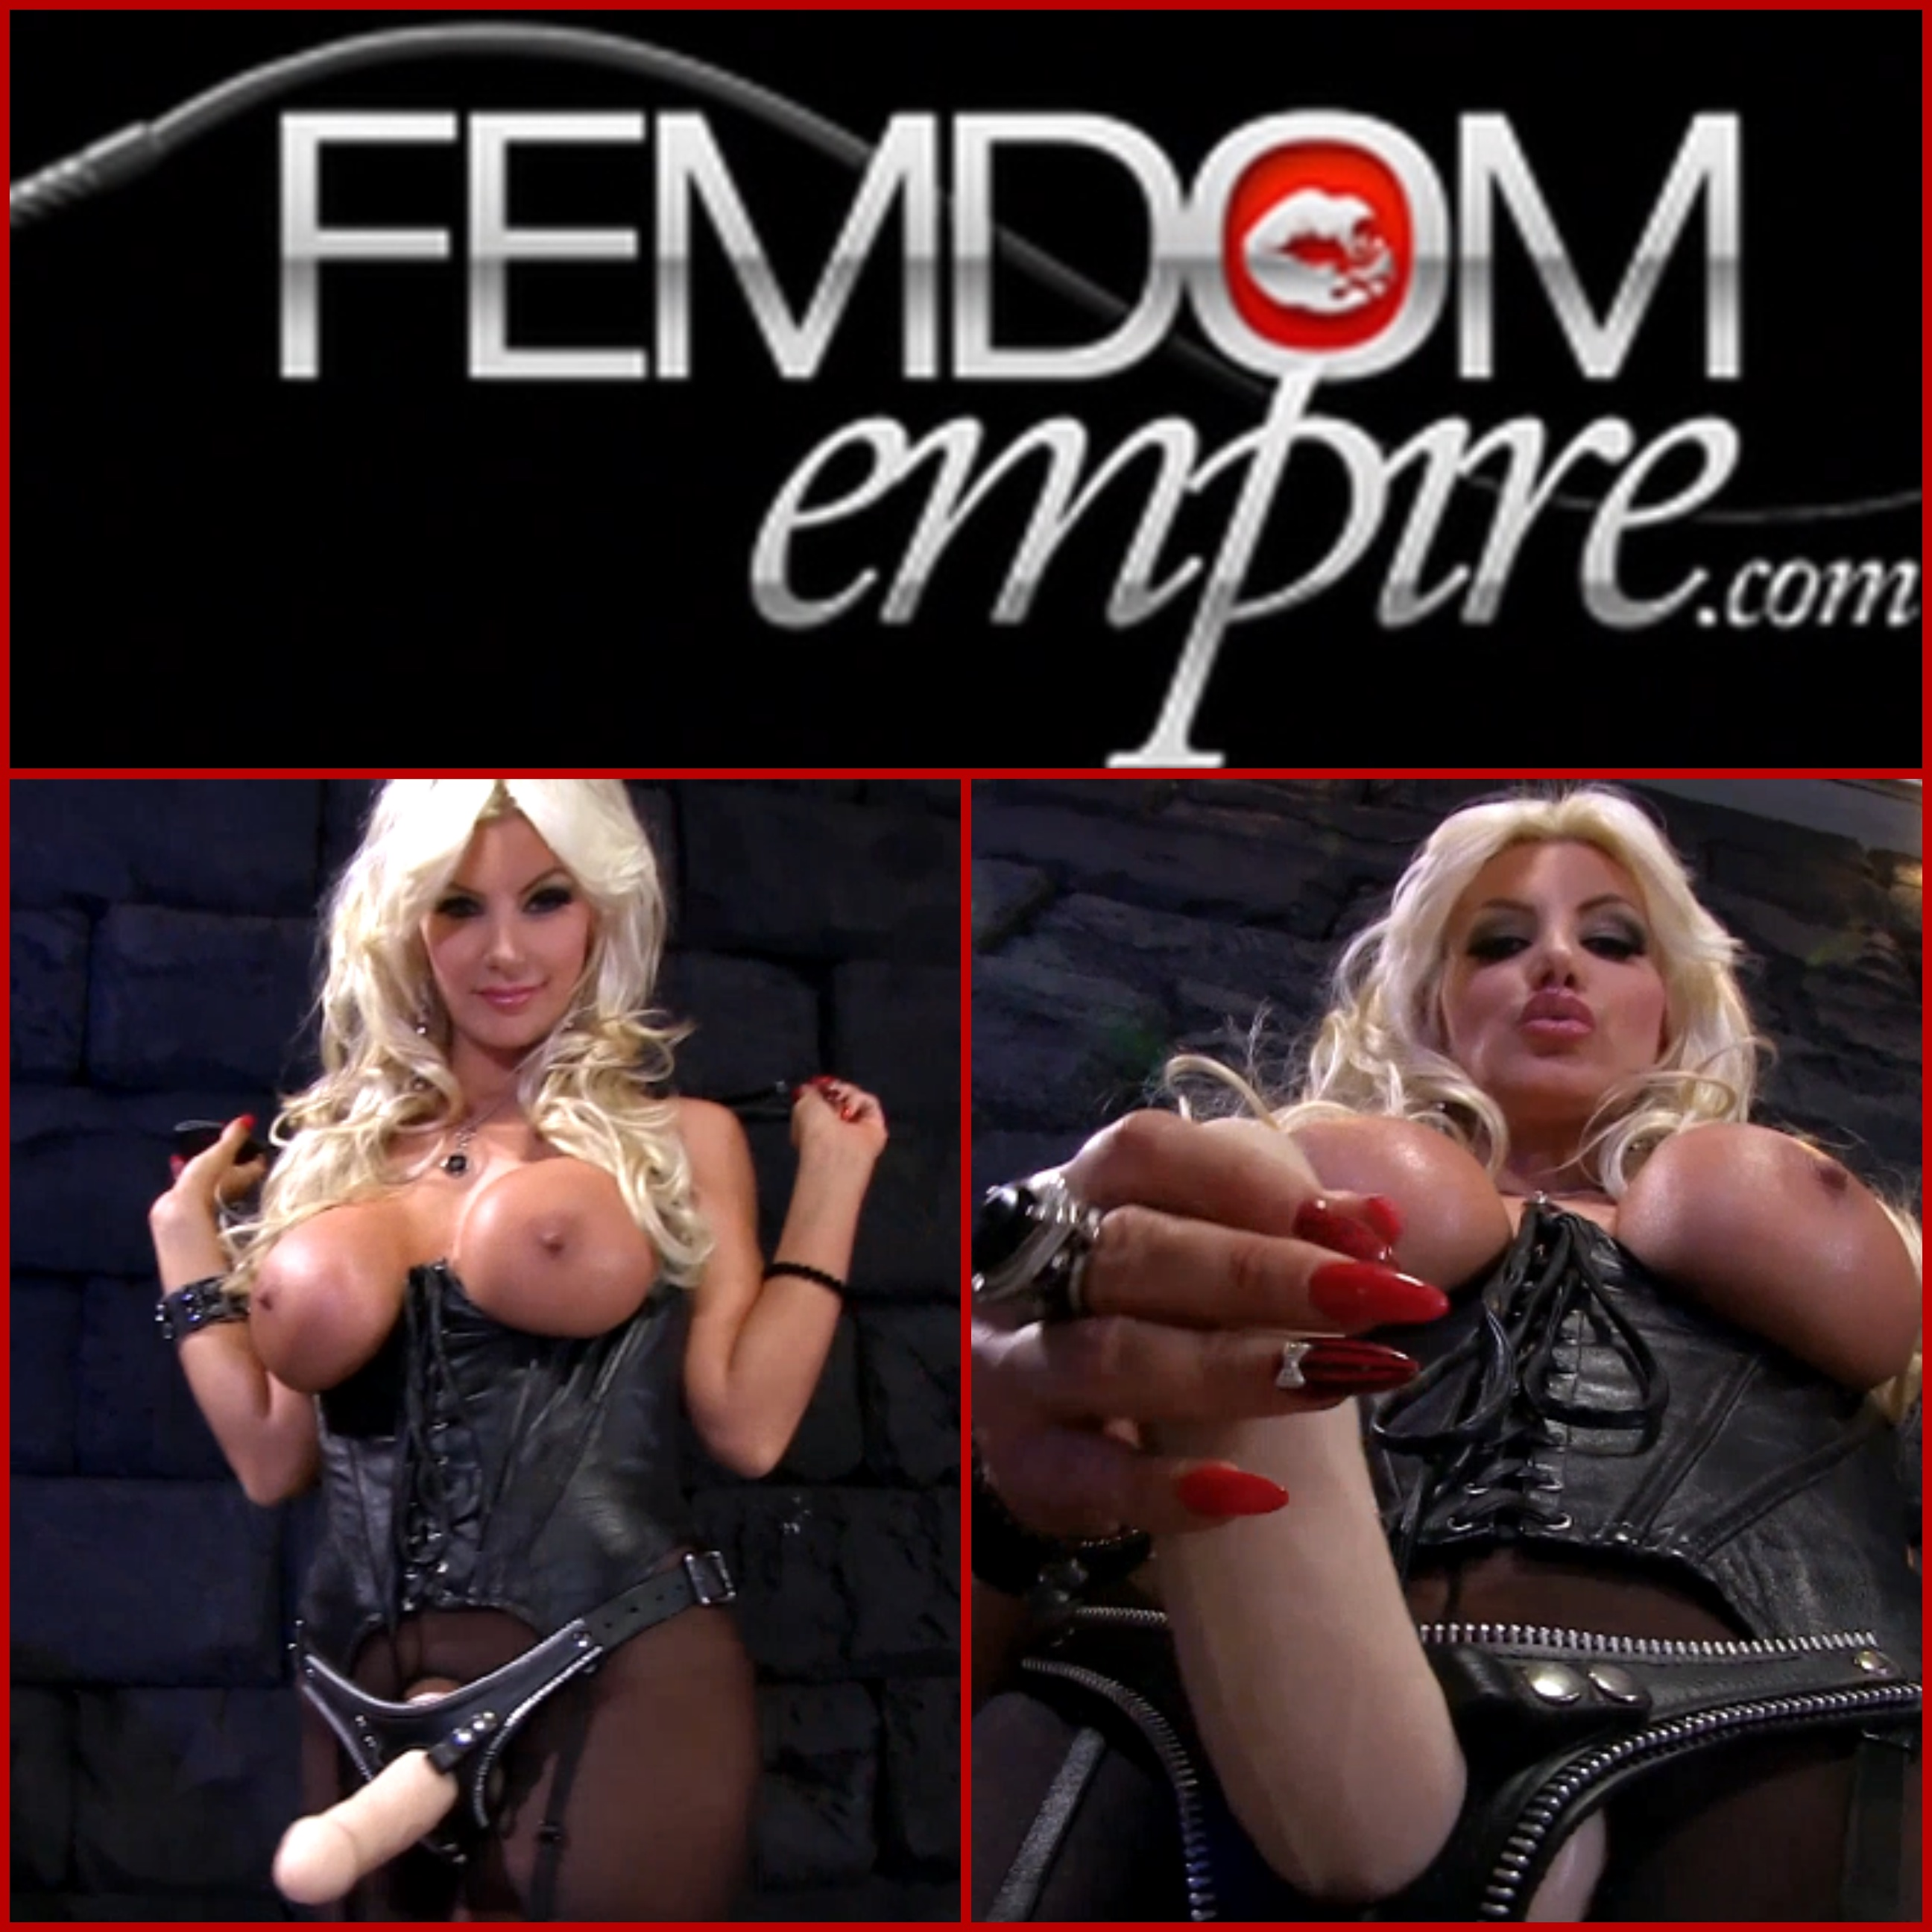 Meninpain femdom video and photo